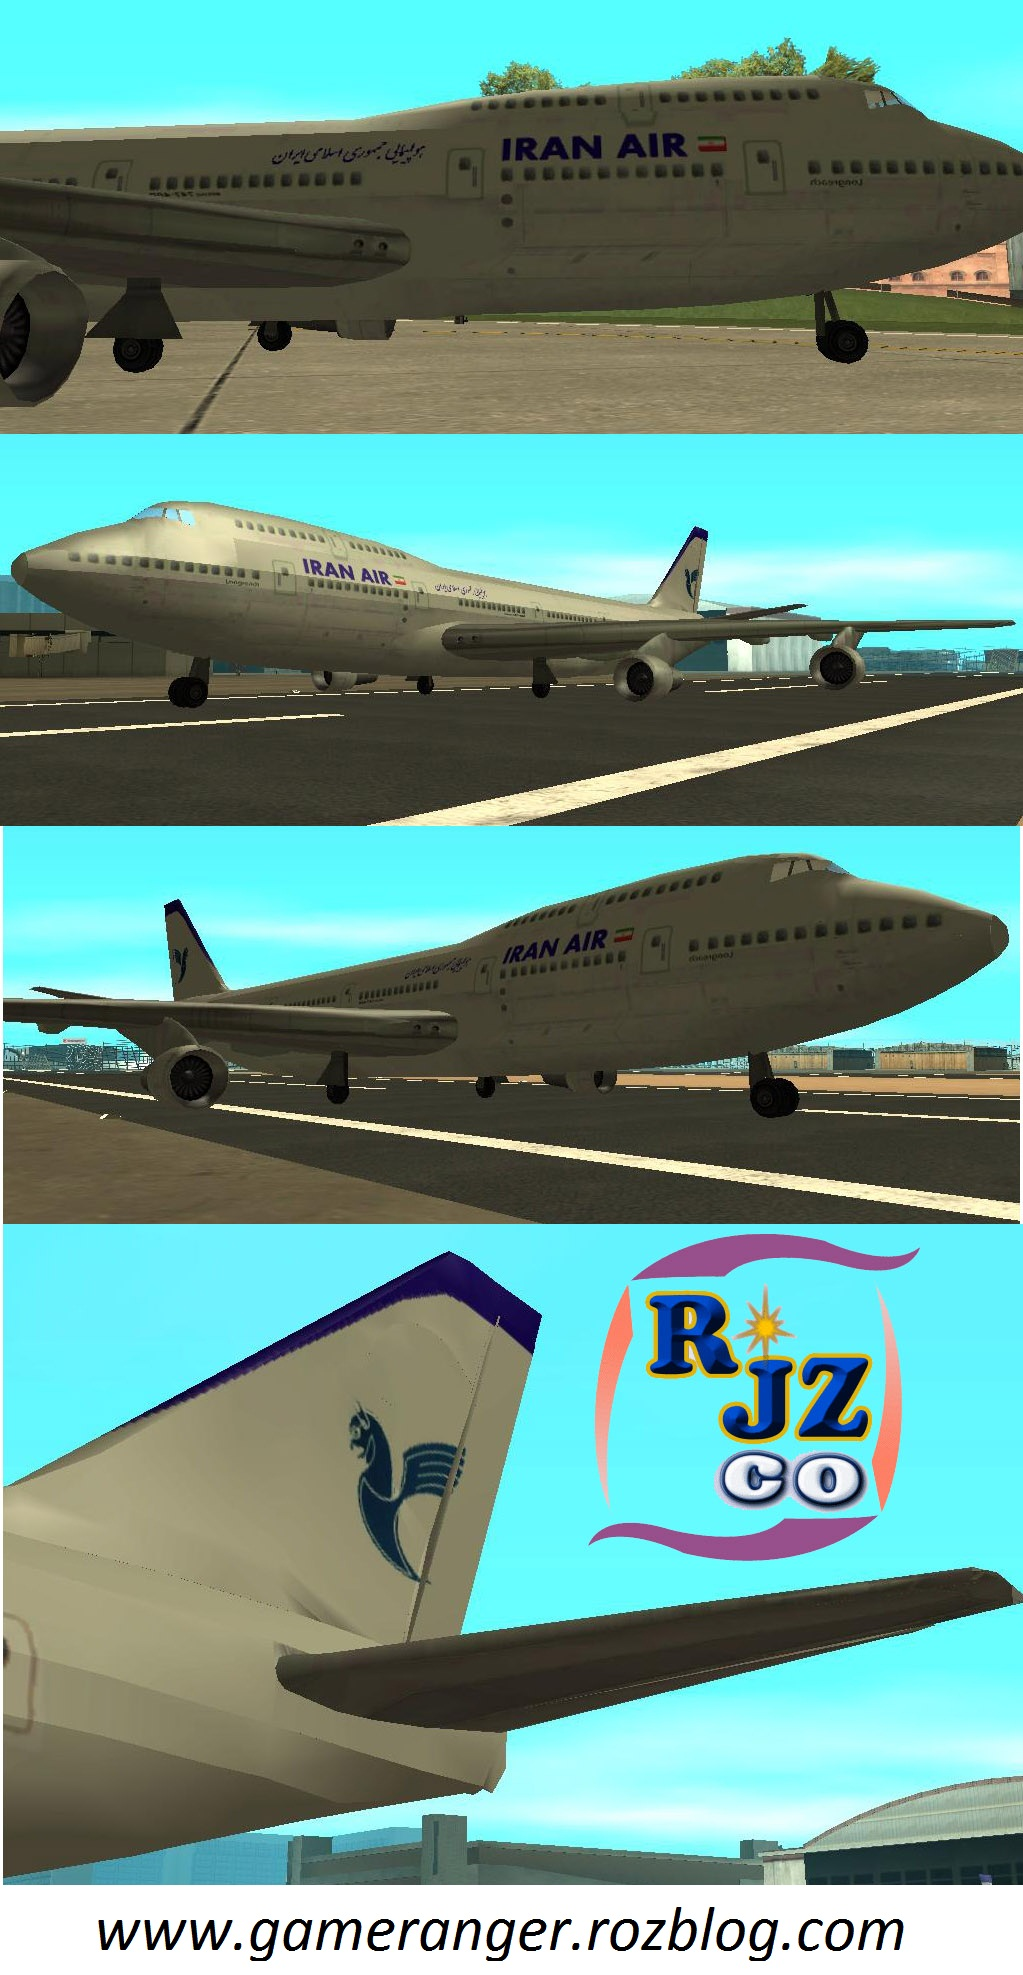 http://rozup.ir/up/gameranger/edit/iranair.jpg